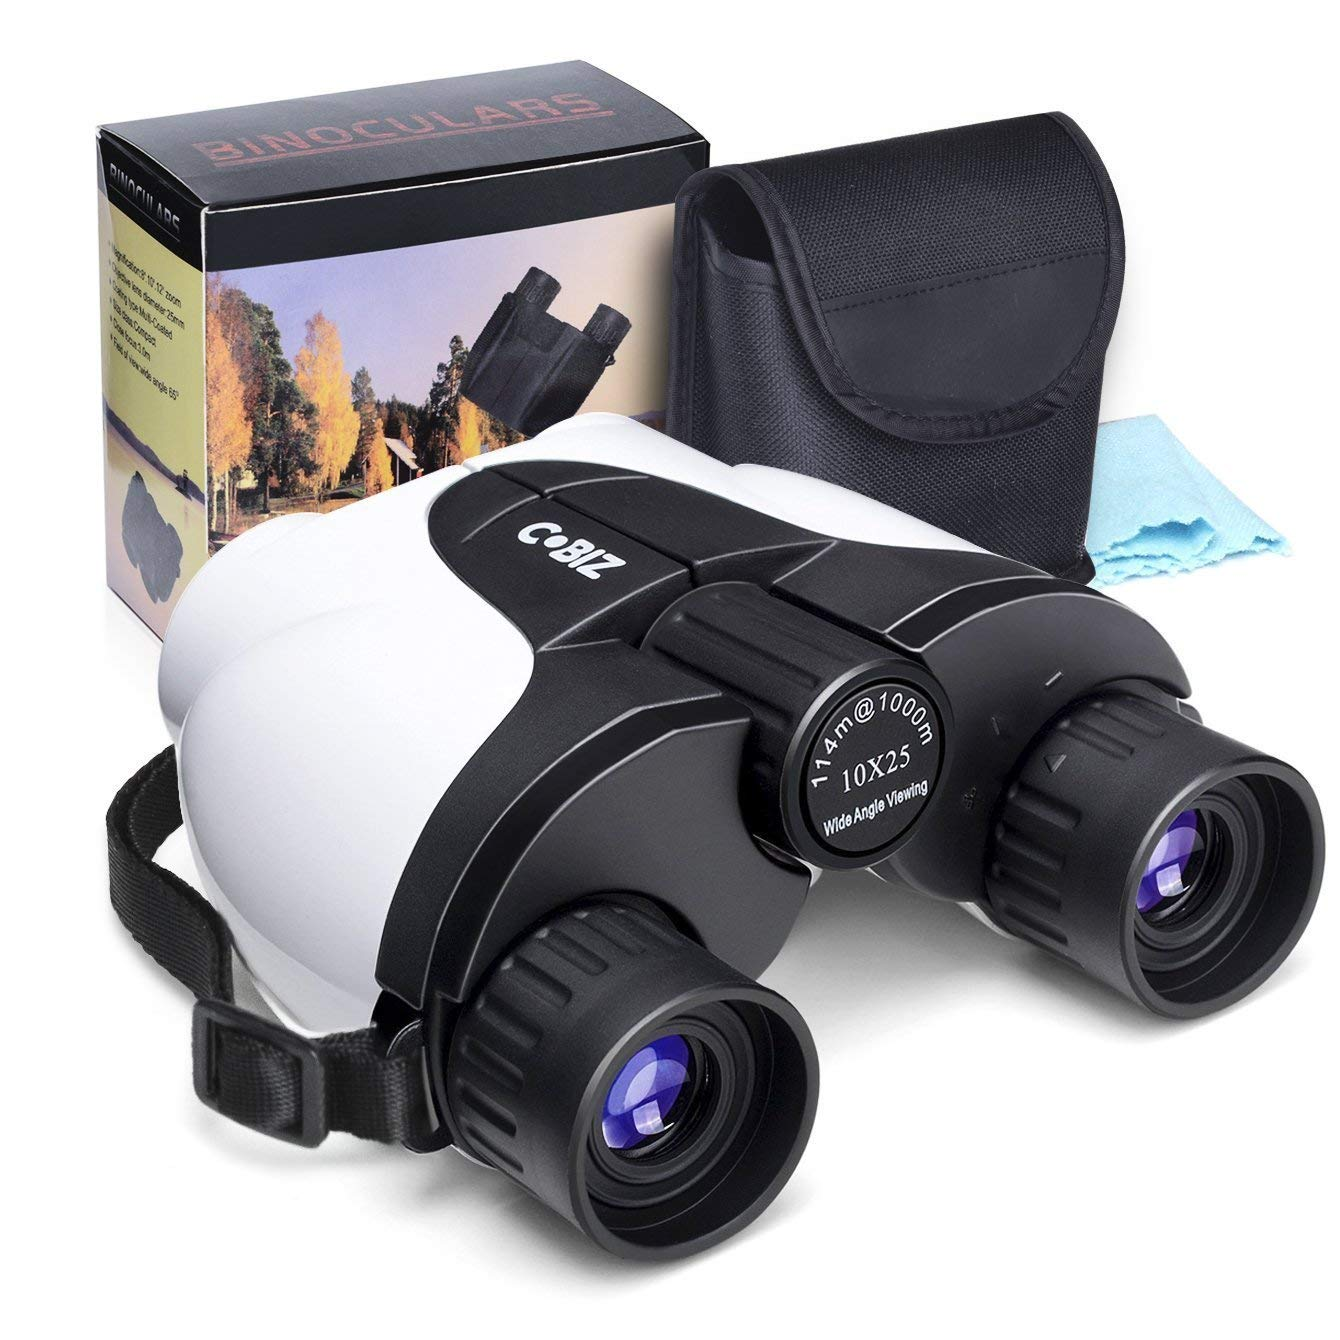 Cobiz 10x25 Compact Binoculars for Kids and Adults, Folding Spotting Telescope for Bird Watching,Outdoor Camping and Sports Games,Best Gift for Boys,Girls by Cobiz